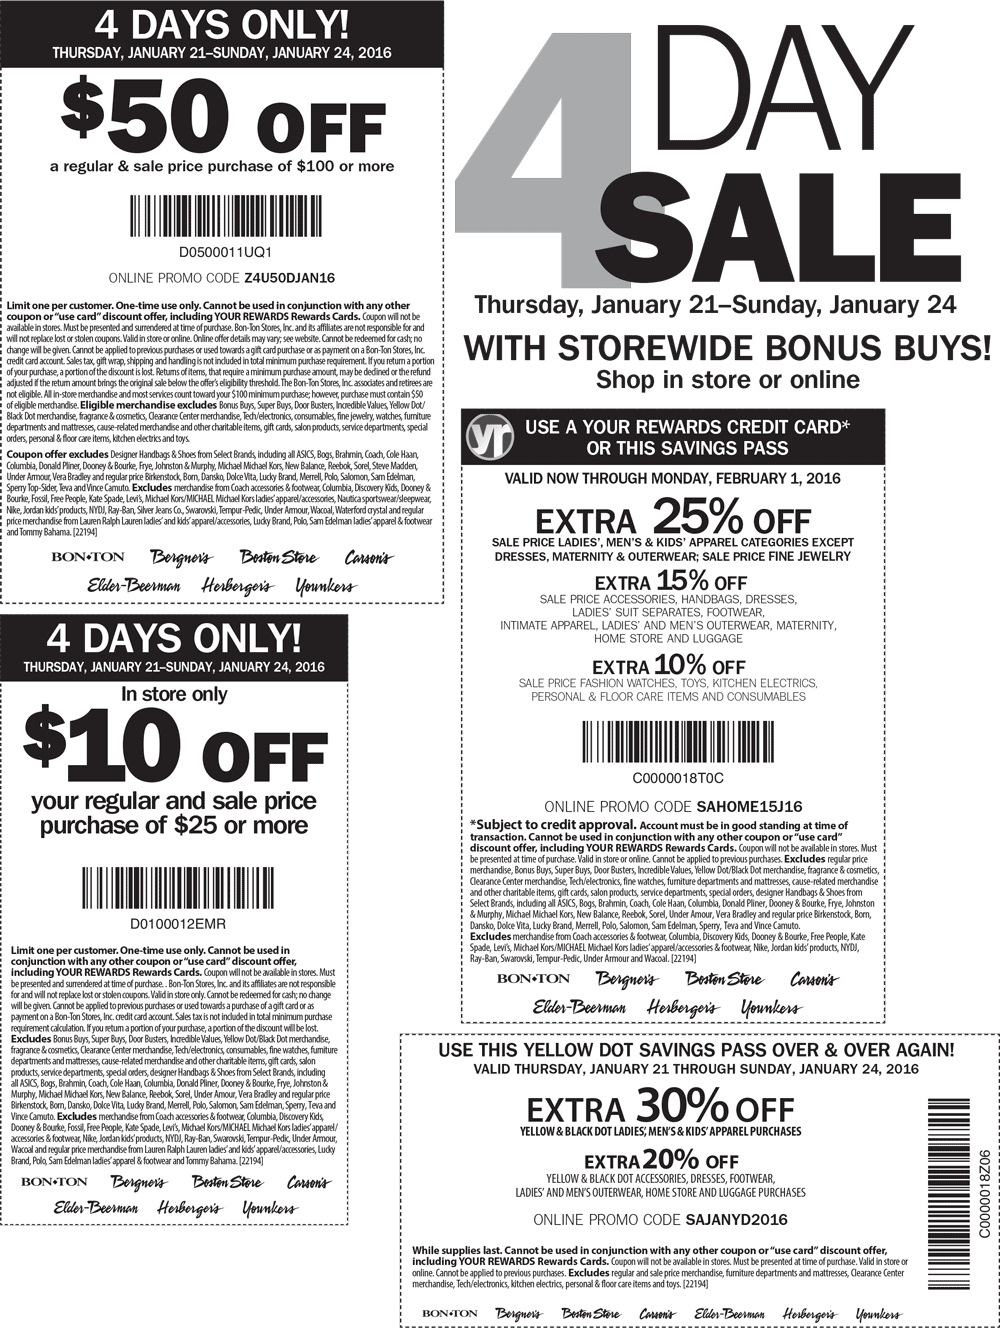 Carsons Coupon August 2017 $50 off $100 & more at Carsons, Bon Ton & sister stores, or online via promo code Z4U50DJAN16